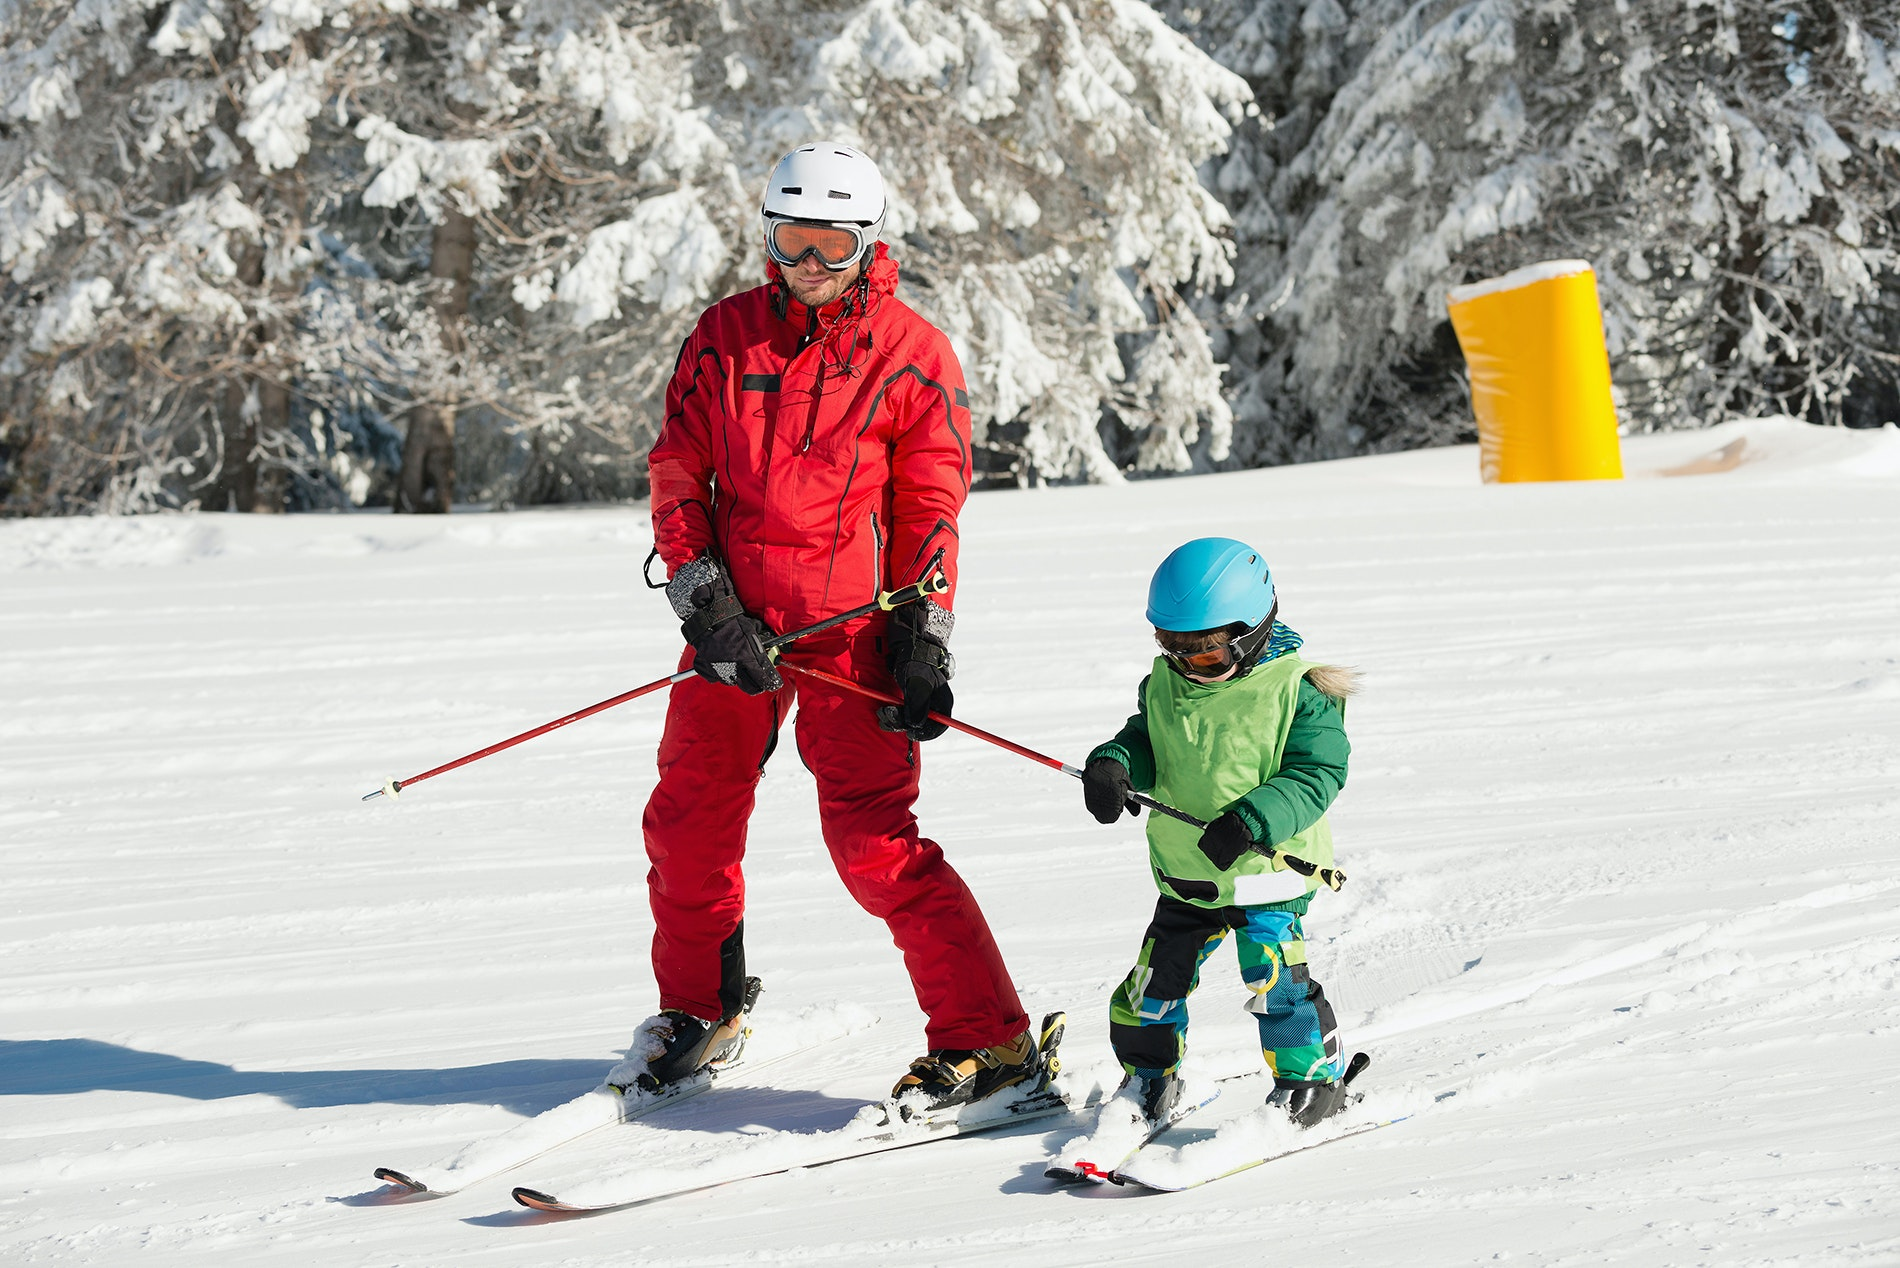 Ski instructors can work at mountain resorts in the United States, Canada, New Zealand, Chile, France, Japan, and beyond.